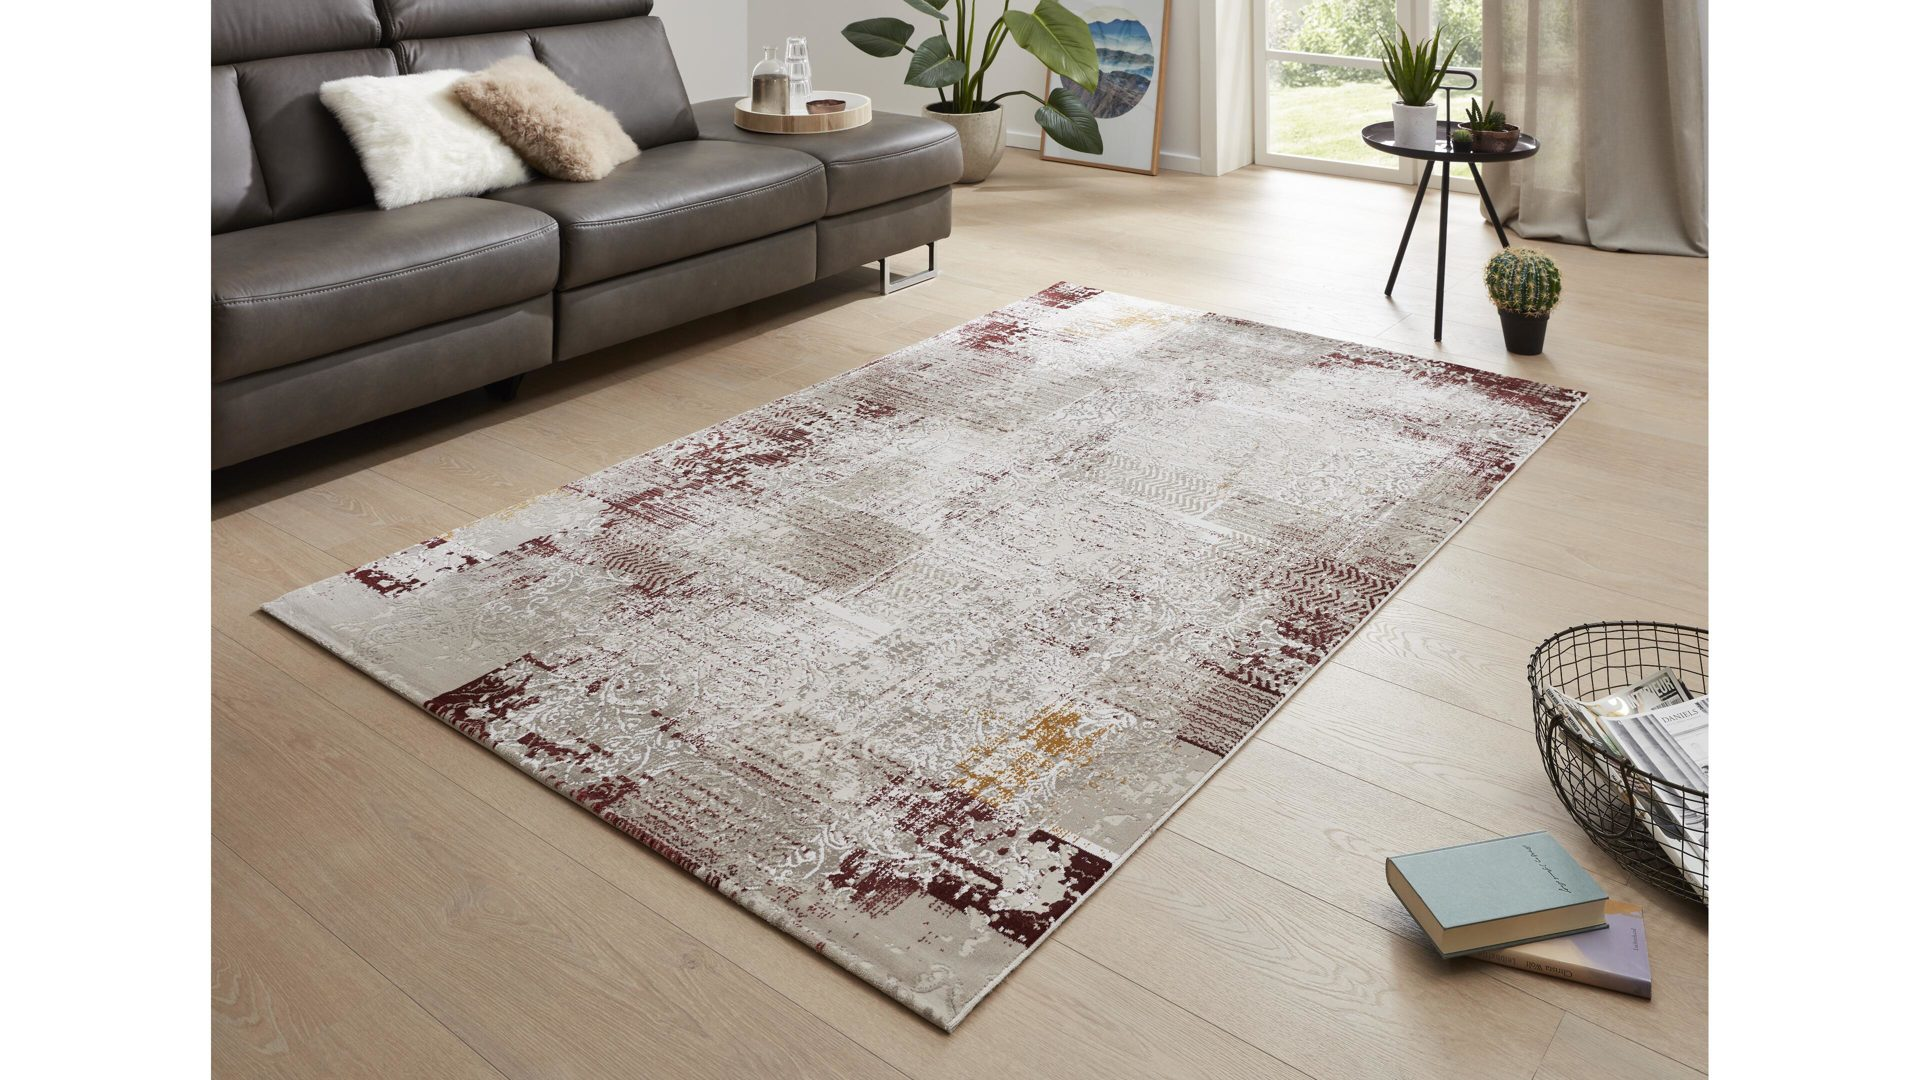 Webteppich Interliving aus Kunstfaser in Rot Interliving Teppich Serie L-8540 beige-rot – ca. 140 x 200 cm